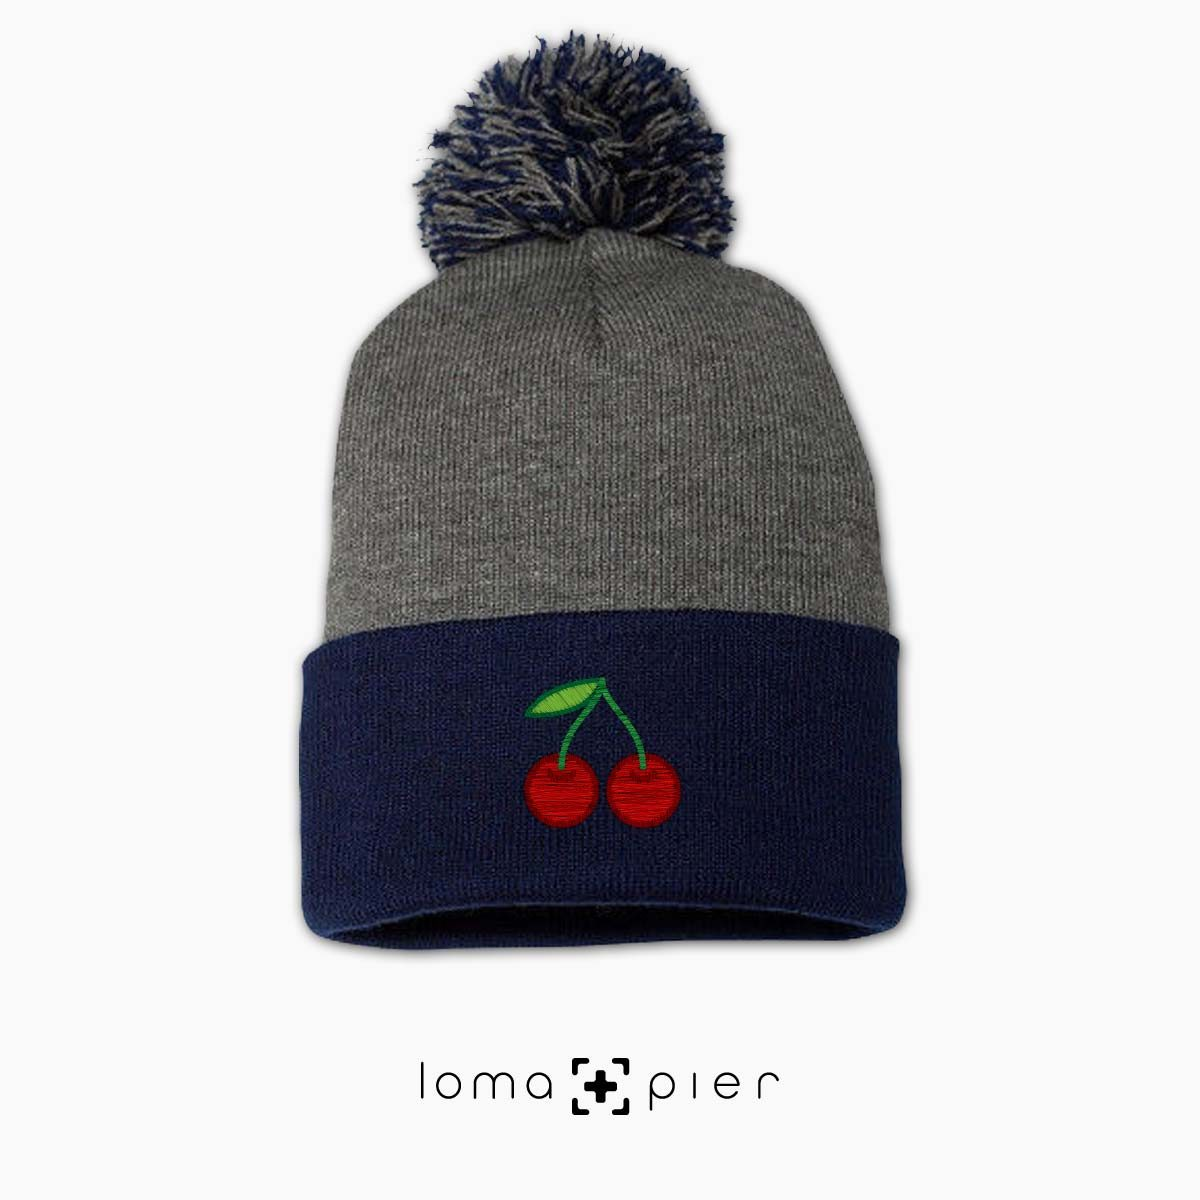 CHERRIES icon embroidered on a grey navy pom pom beanie by loma+pier beanie store